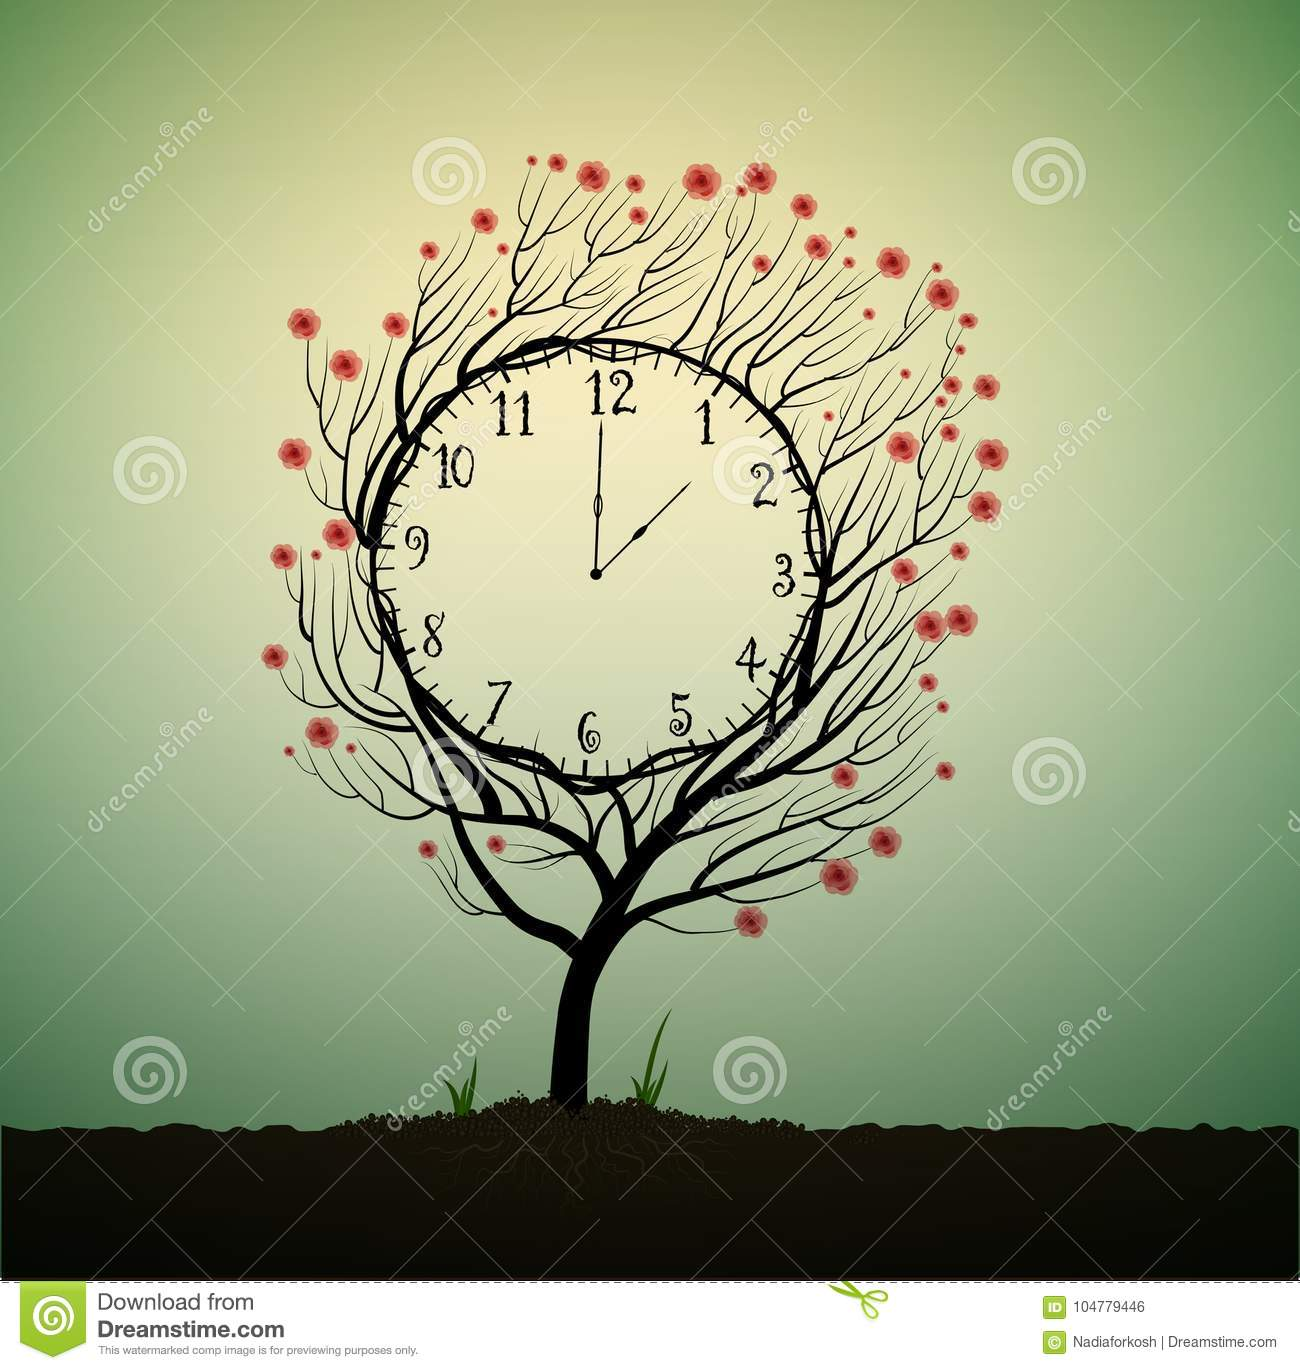 Summer clock, time to blossom, tree looks like clock with red flowers,